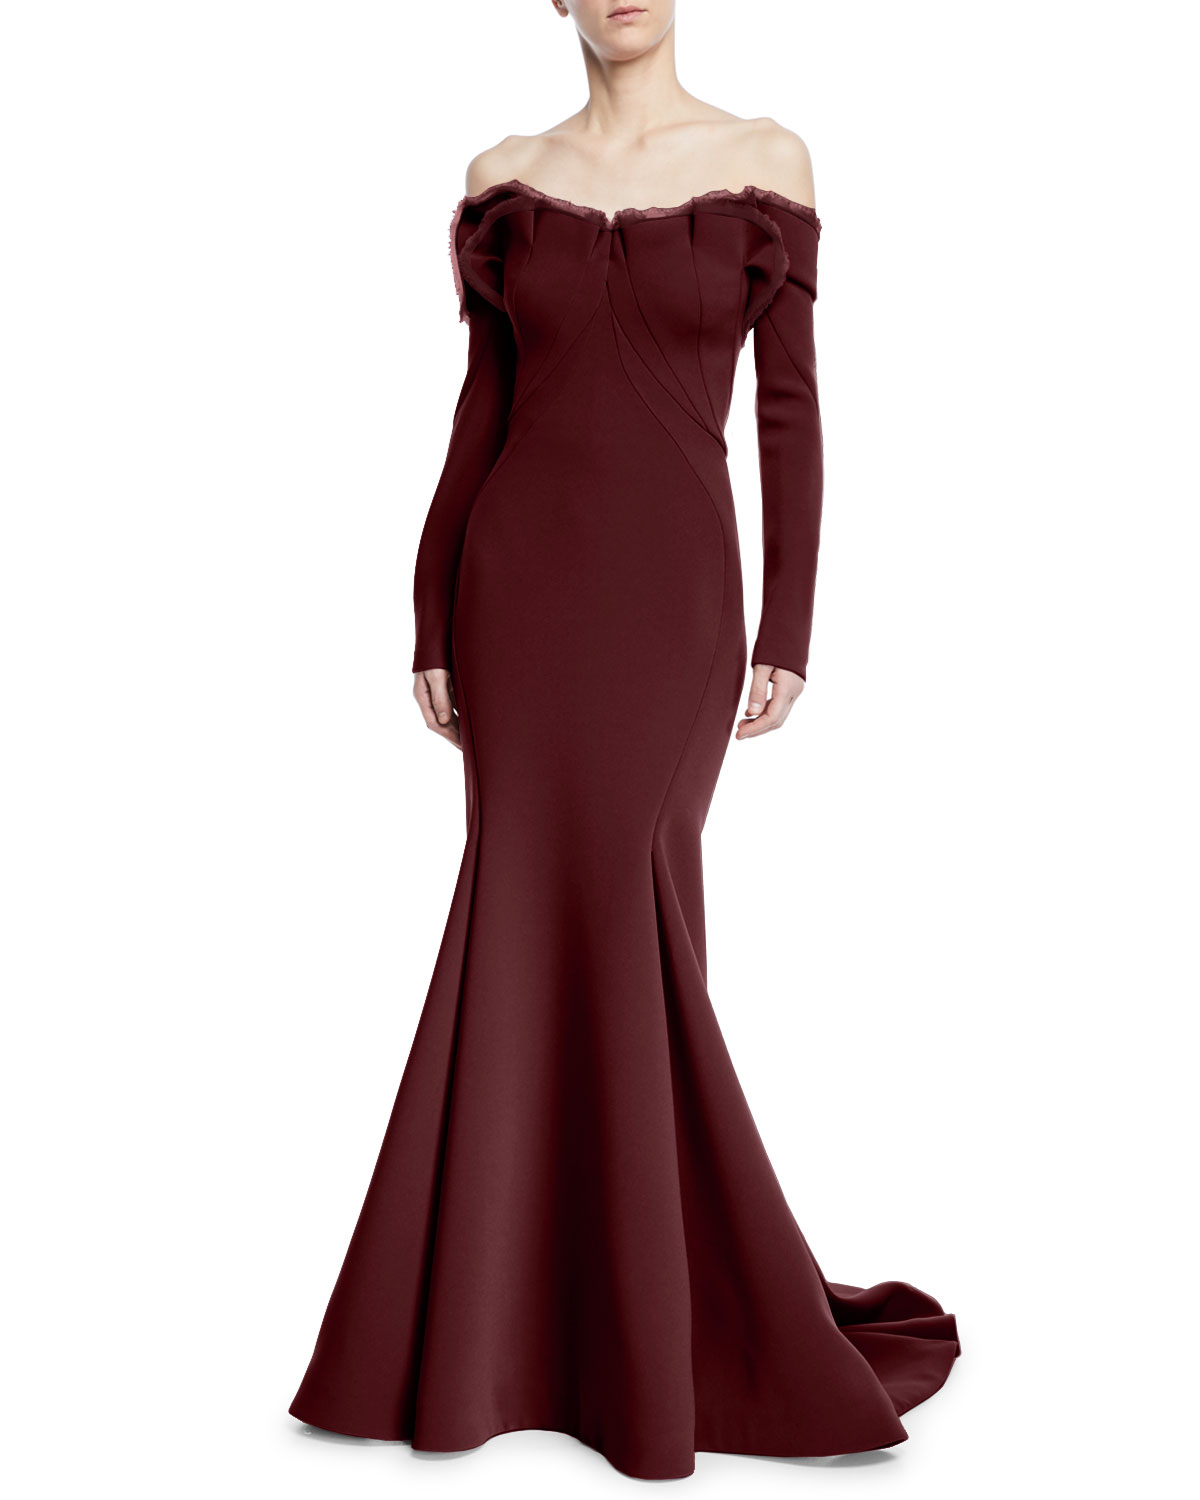 ZAC POSEN LONG-SLEEVE OFF-THE-SHOULDER GOWN W/ TRAIN